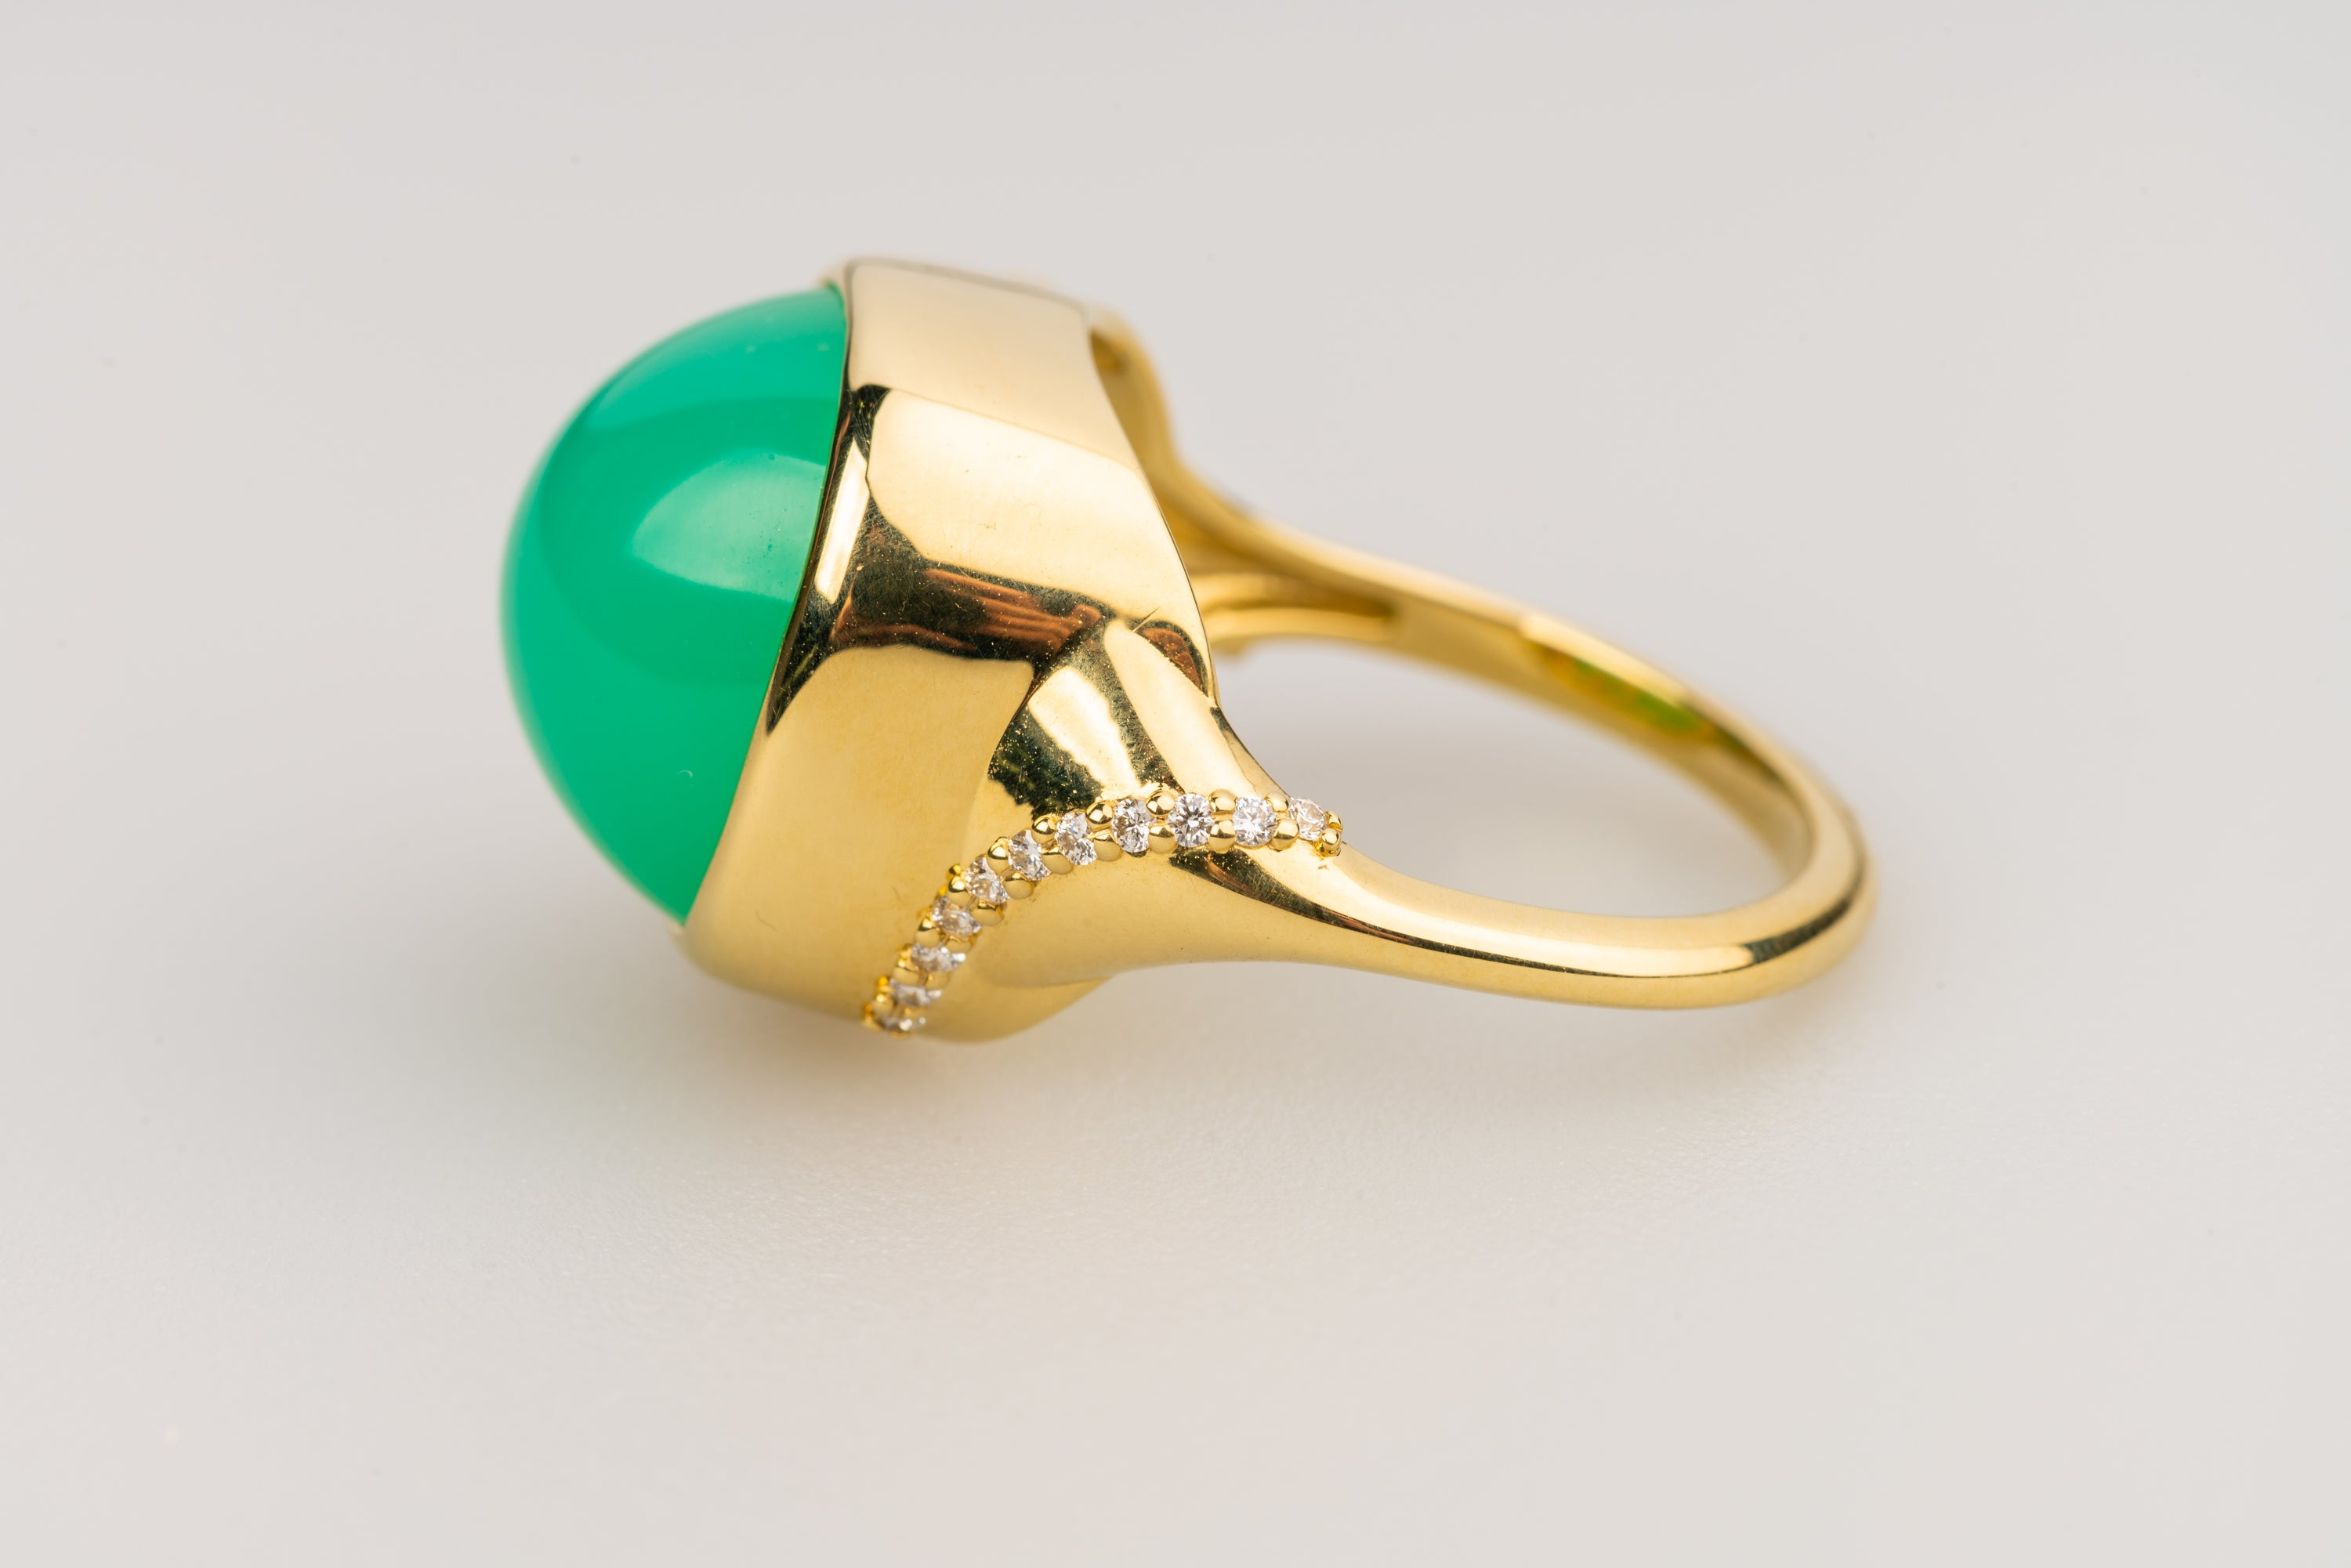 Chrysophrase Cabochon Ring in 18k Yellow Gold